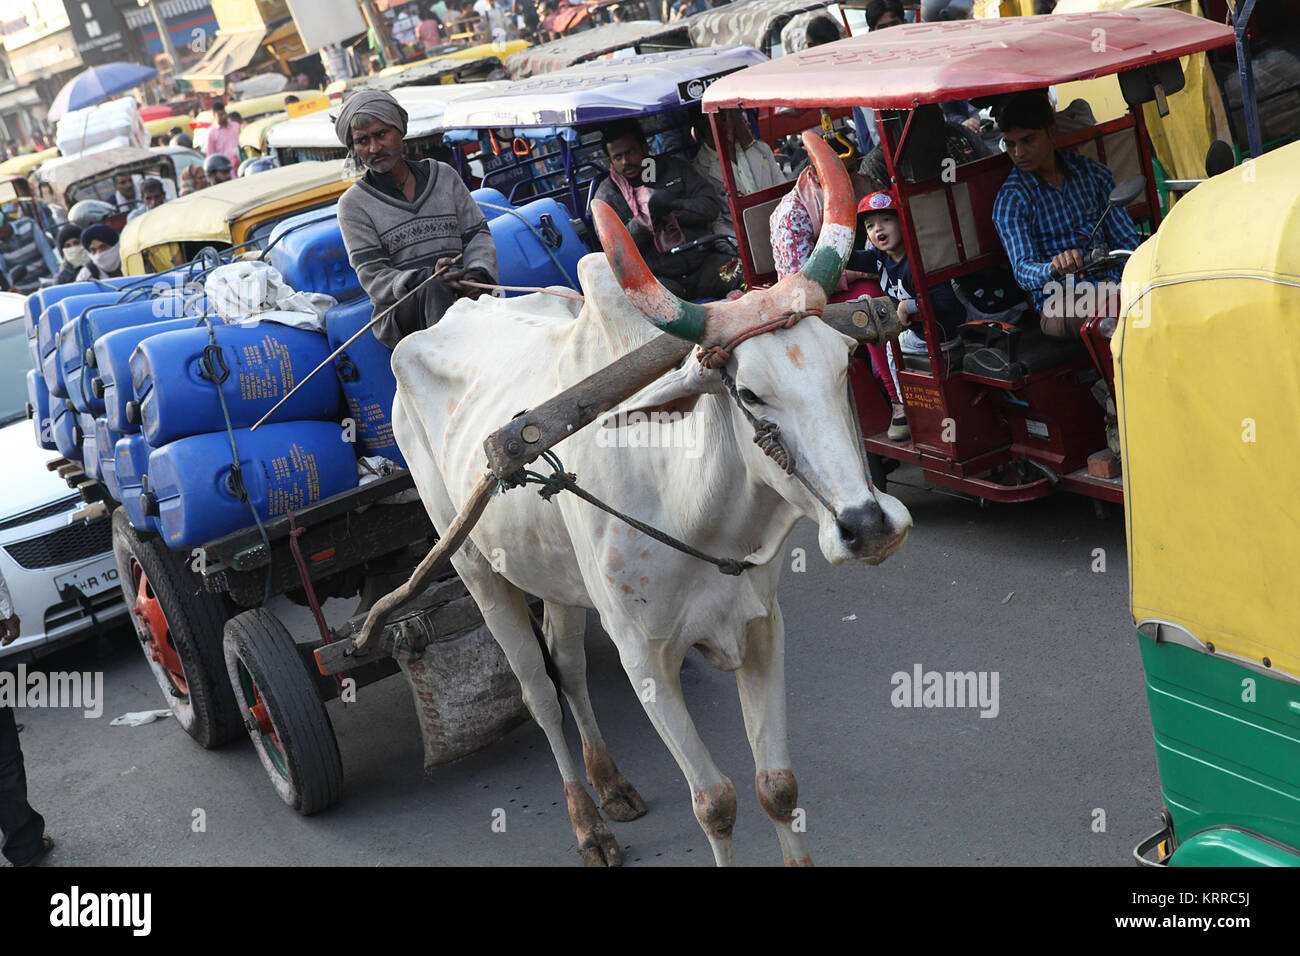 A bullock cart and driver in congested traffic in Chandni Chowk, New Delhi, India - Stock Image